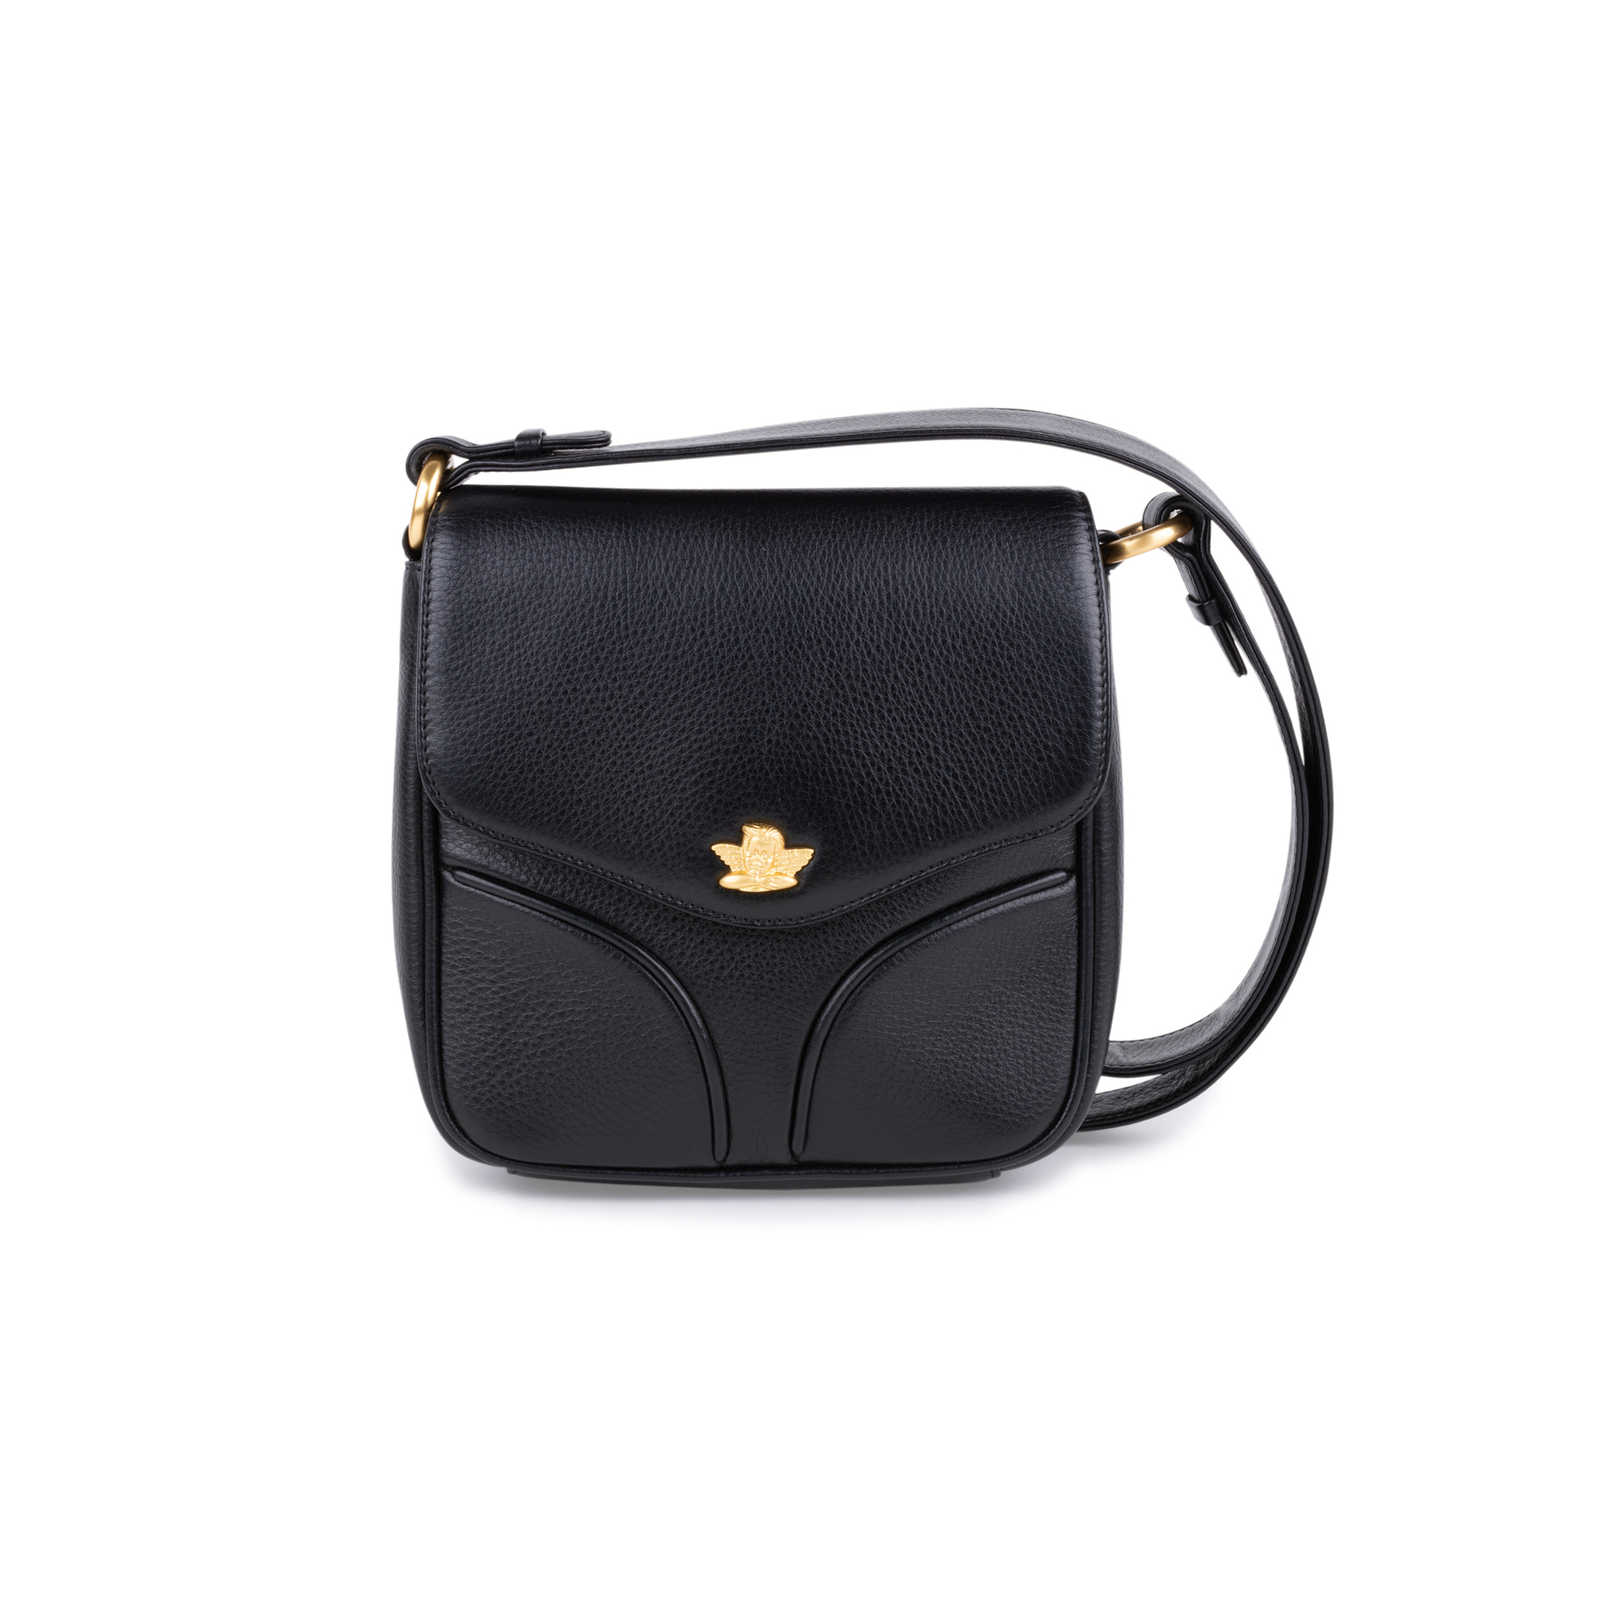 a9caab439319 Authentic Second Hand Comtesse When Angels Travel Black Sling Leather  Satchel Bag (PSS-099 ...